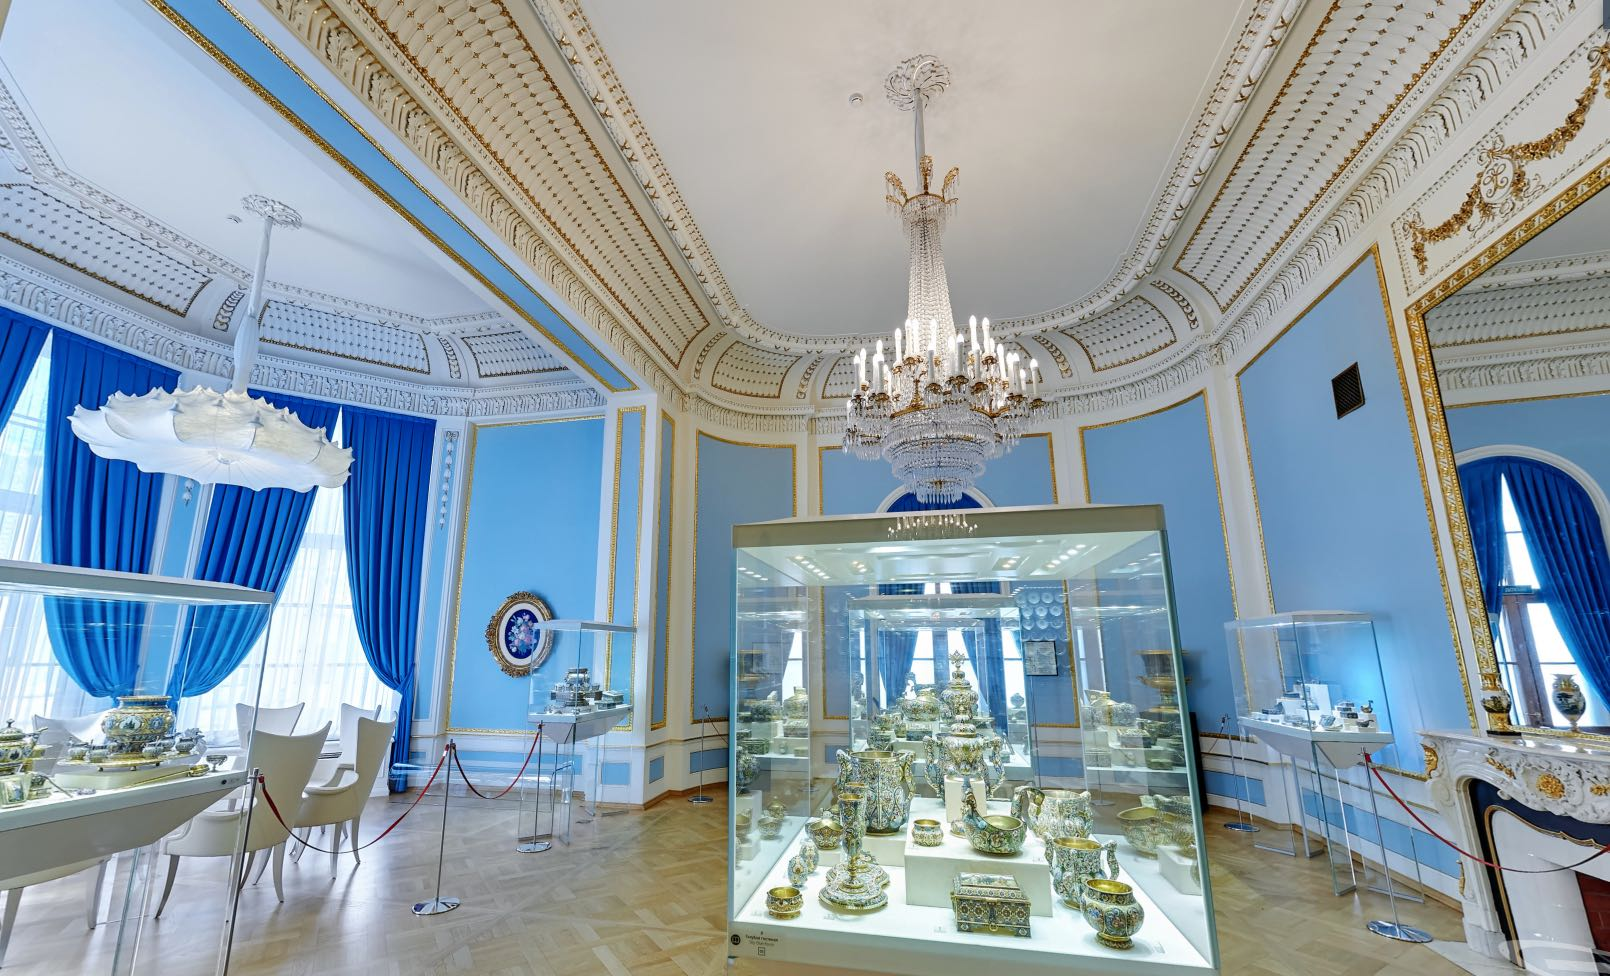 Porcelain room